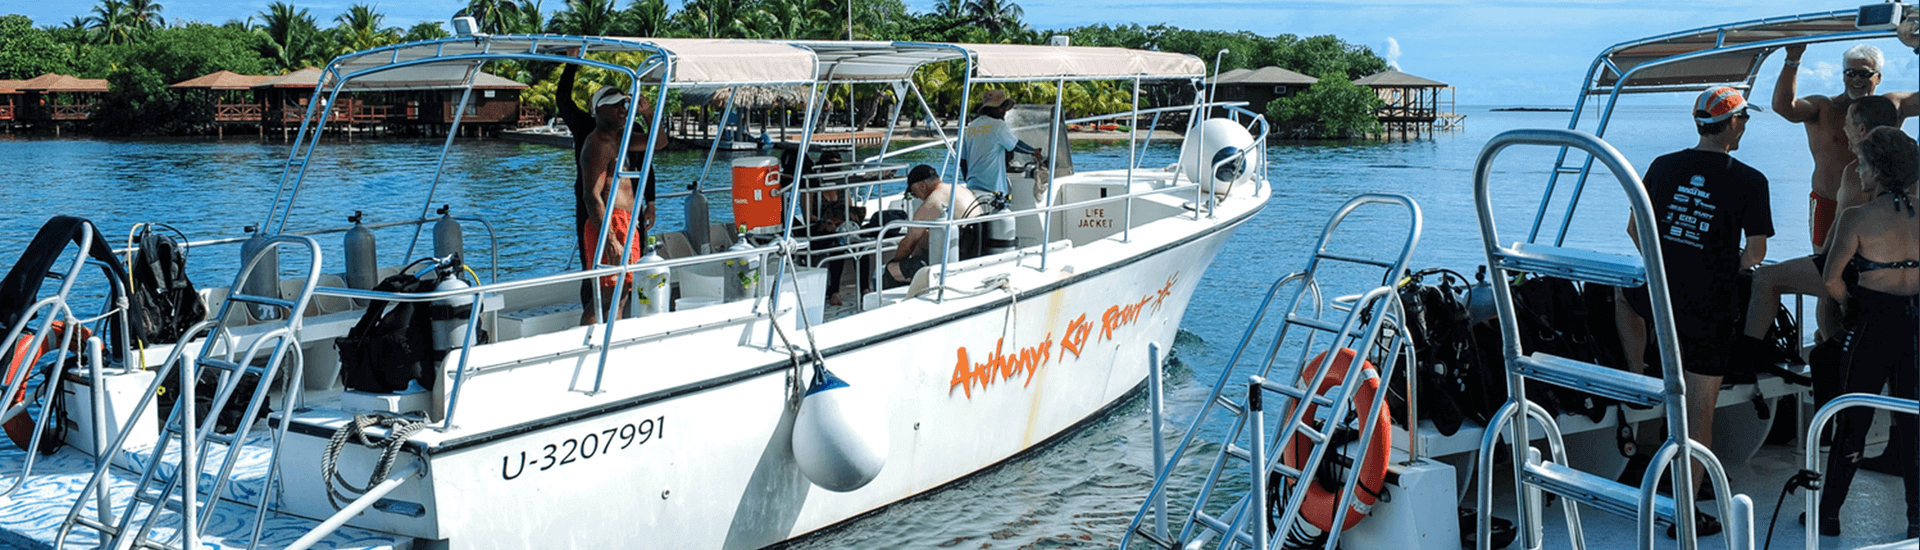 There are more than 200 dive sites on the island of Roatan, and Anthony's Key is the best place to begin exploring the island's underwater treasures.